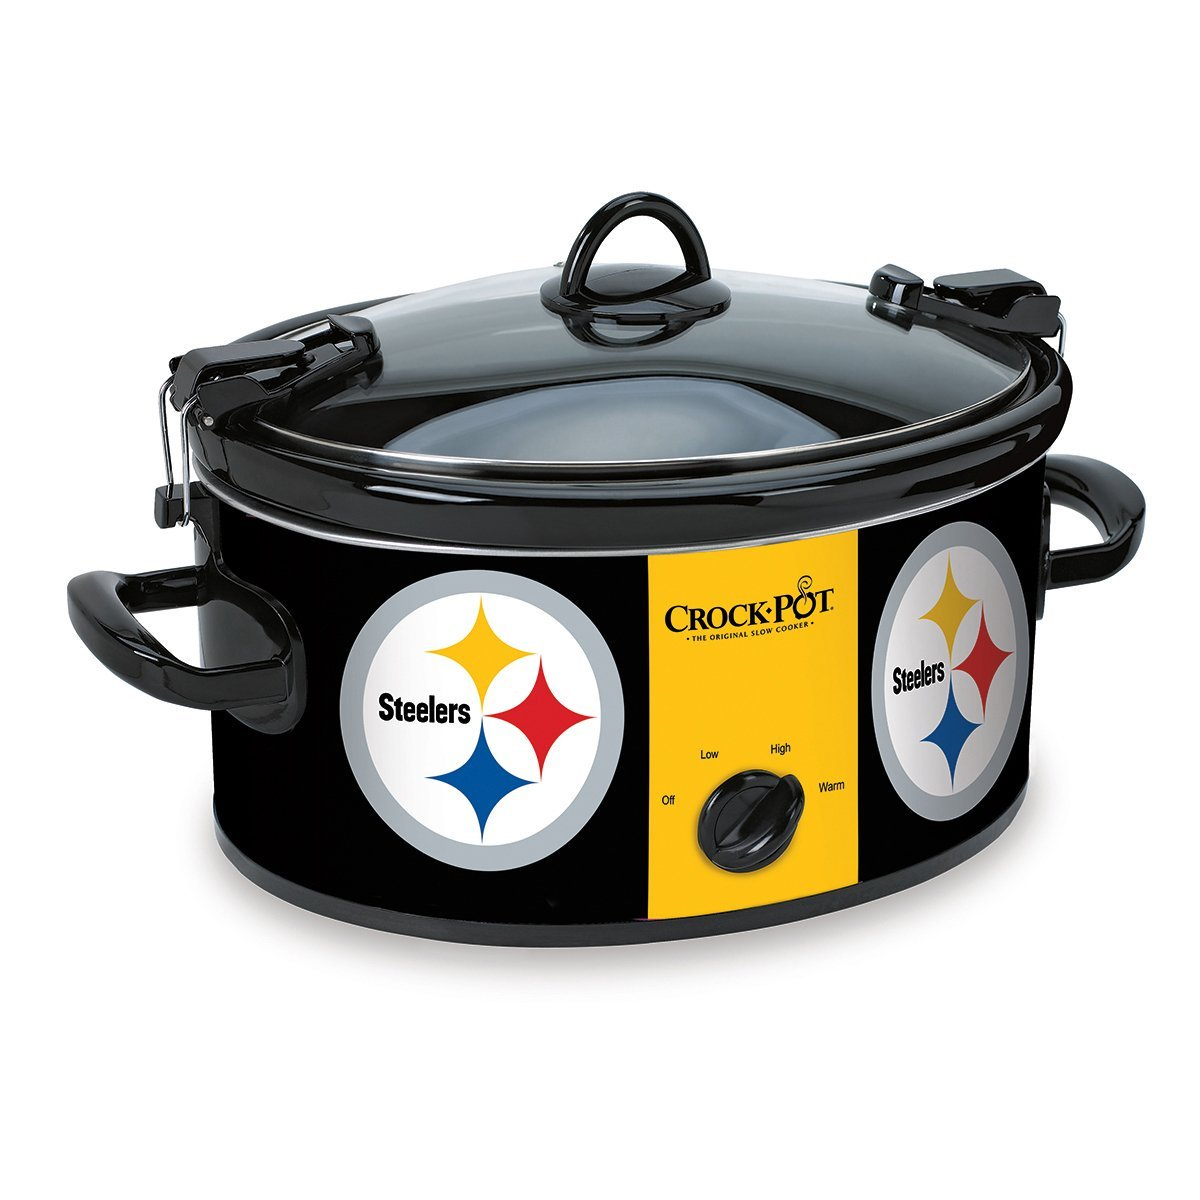 Exceptionnel Crock Pot 6 Quart Cook U0026 Carry Slow Cooker, Pittsburgh Steelers  (SCCPNFL600 PS)   Walmart.com